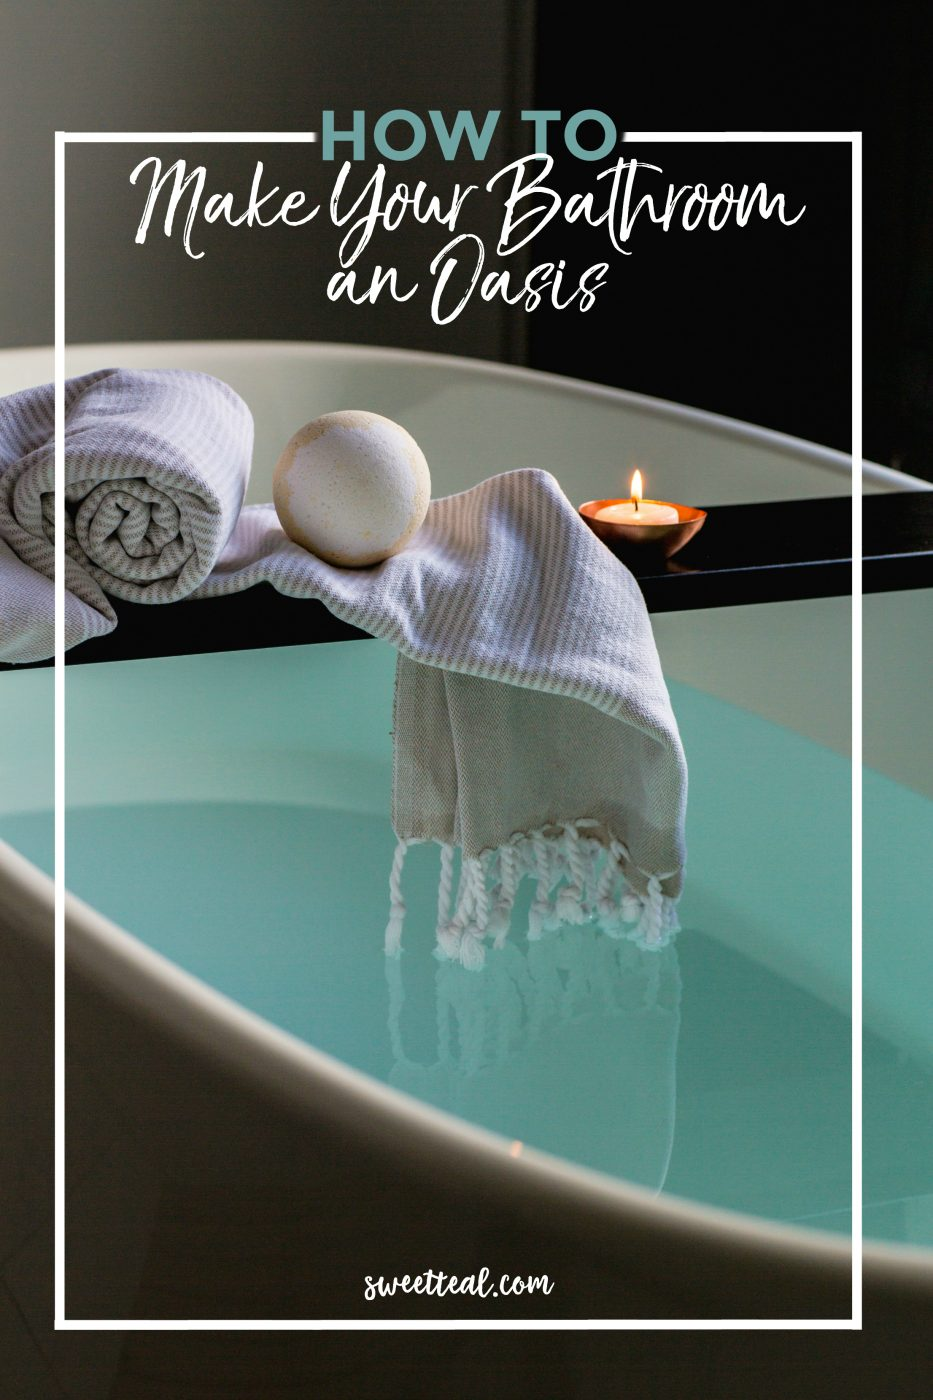 how to make your bathroom an oasis - sweet teal